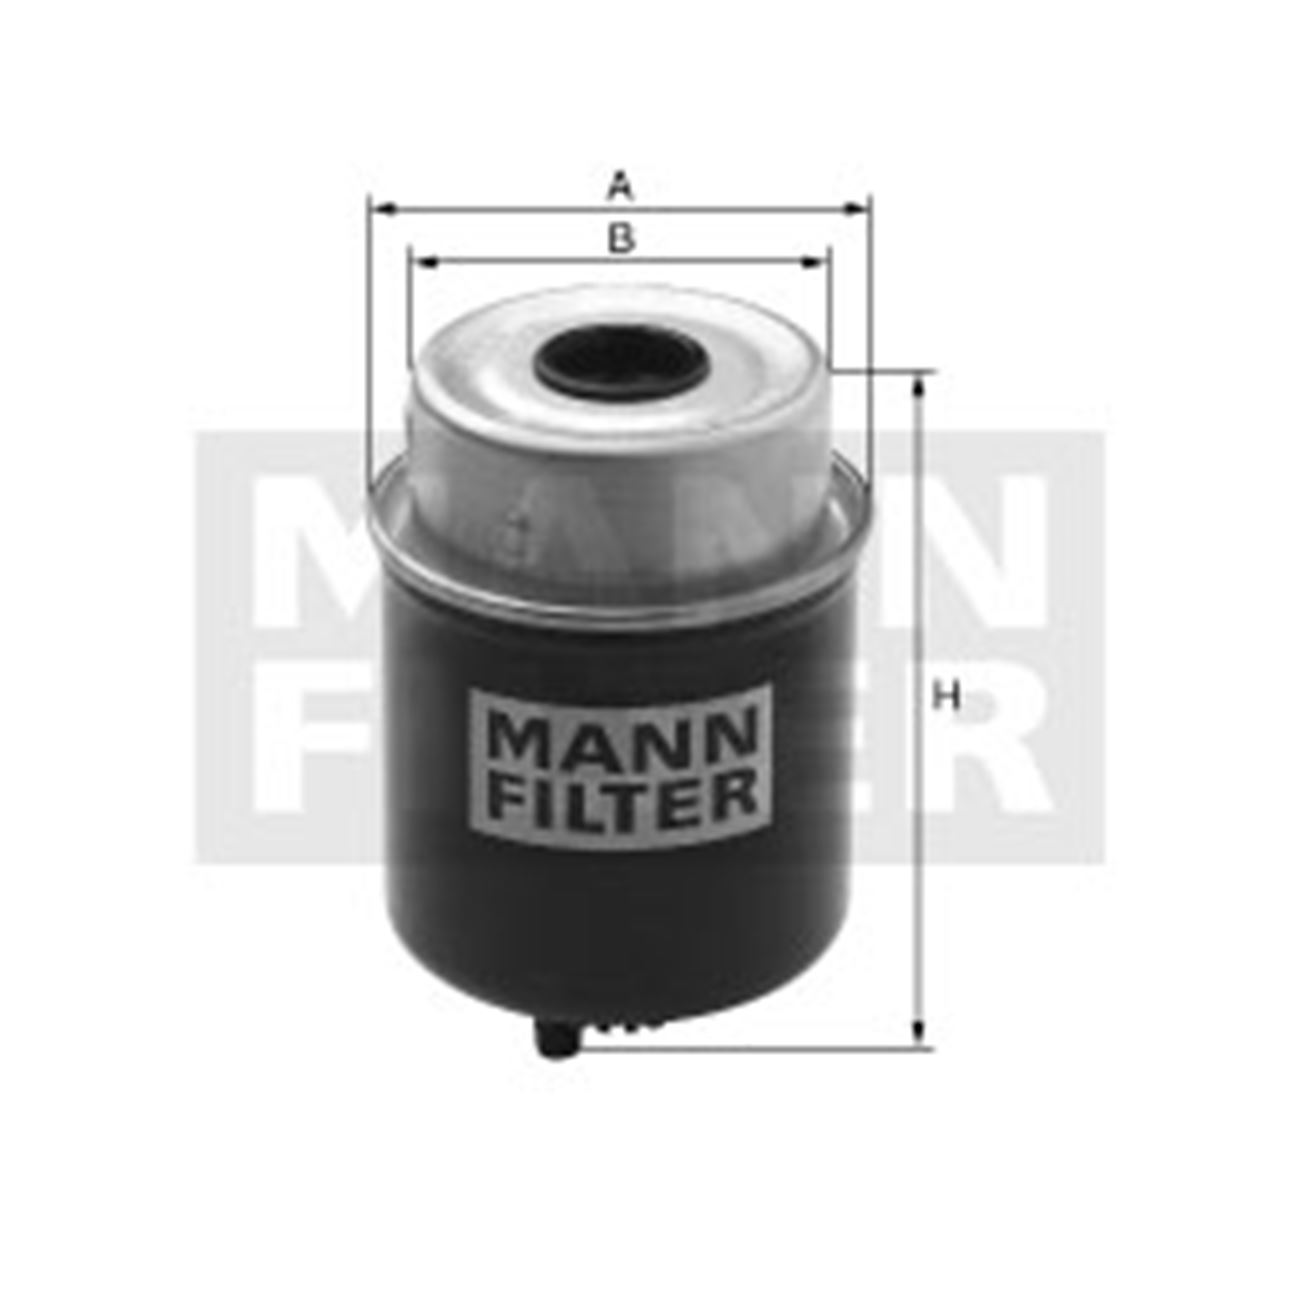 Fuel Filter Filters Pegasustruckparts Perkins